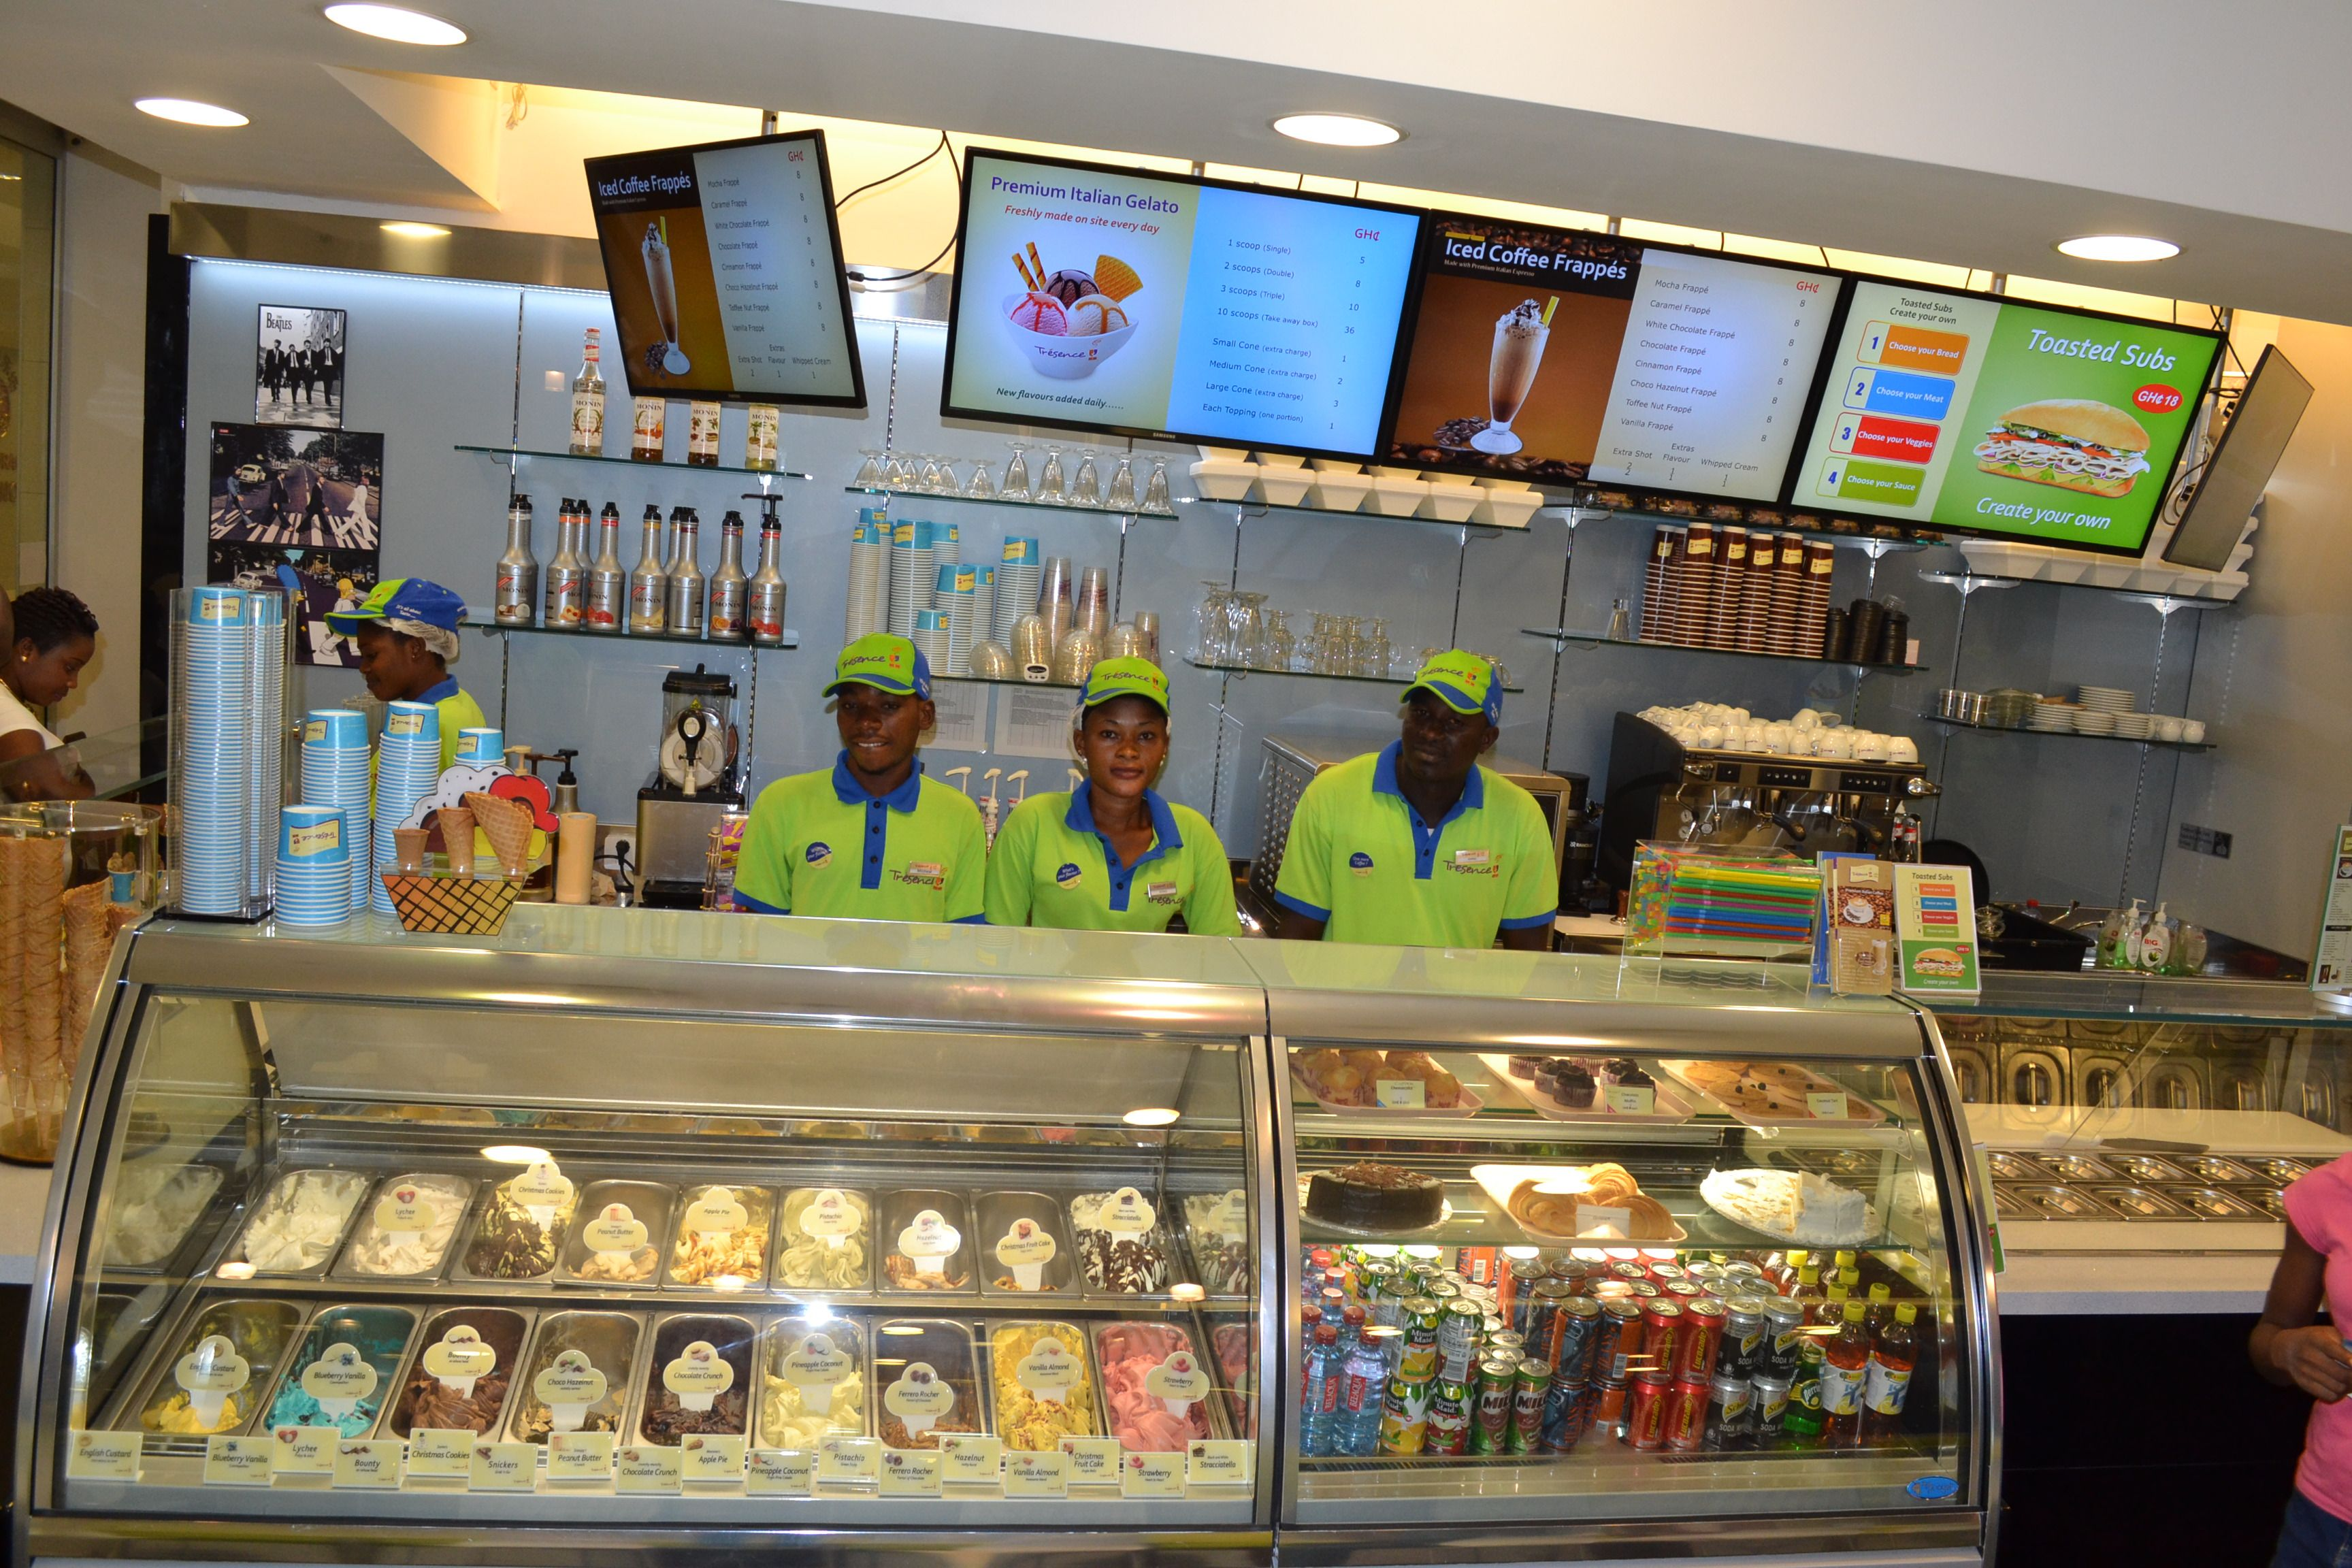 Coffee Ice Cream Shop Located In Nd Floor Oxford Street Mall - Where is oxford located